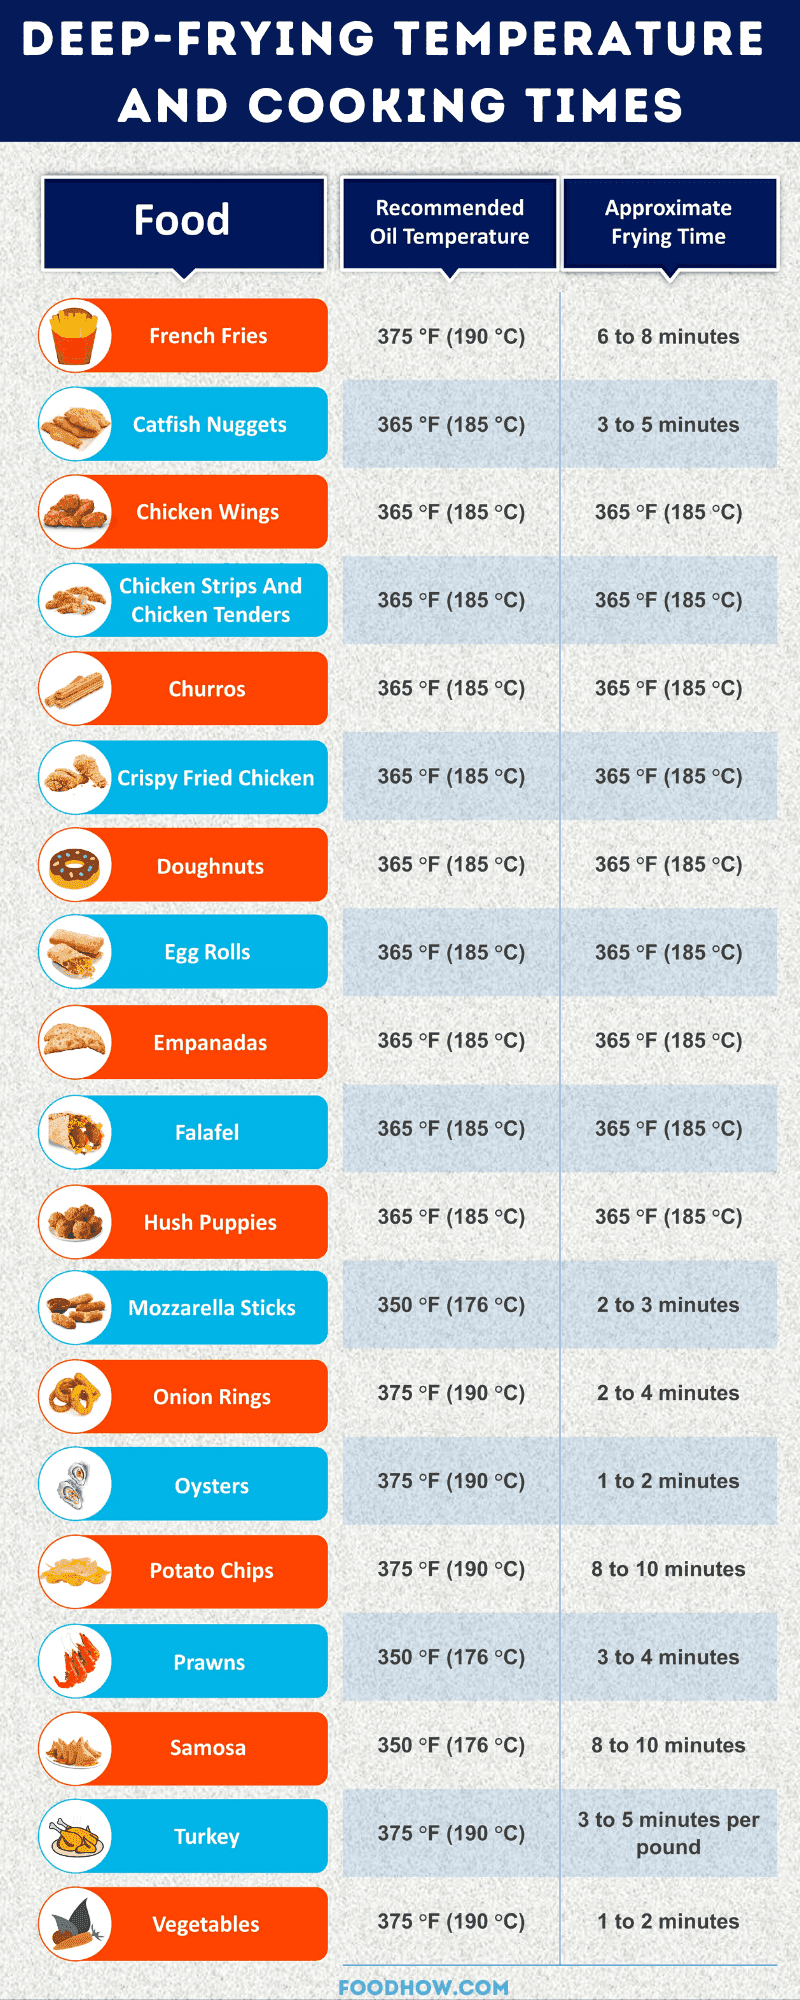 recommended deep-frying temperature and cooking times chart